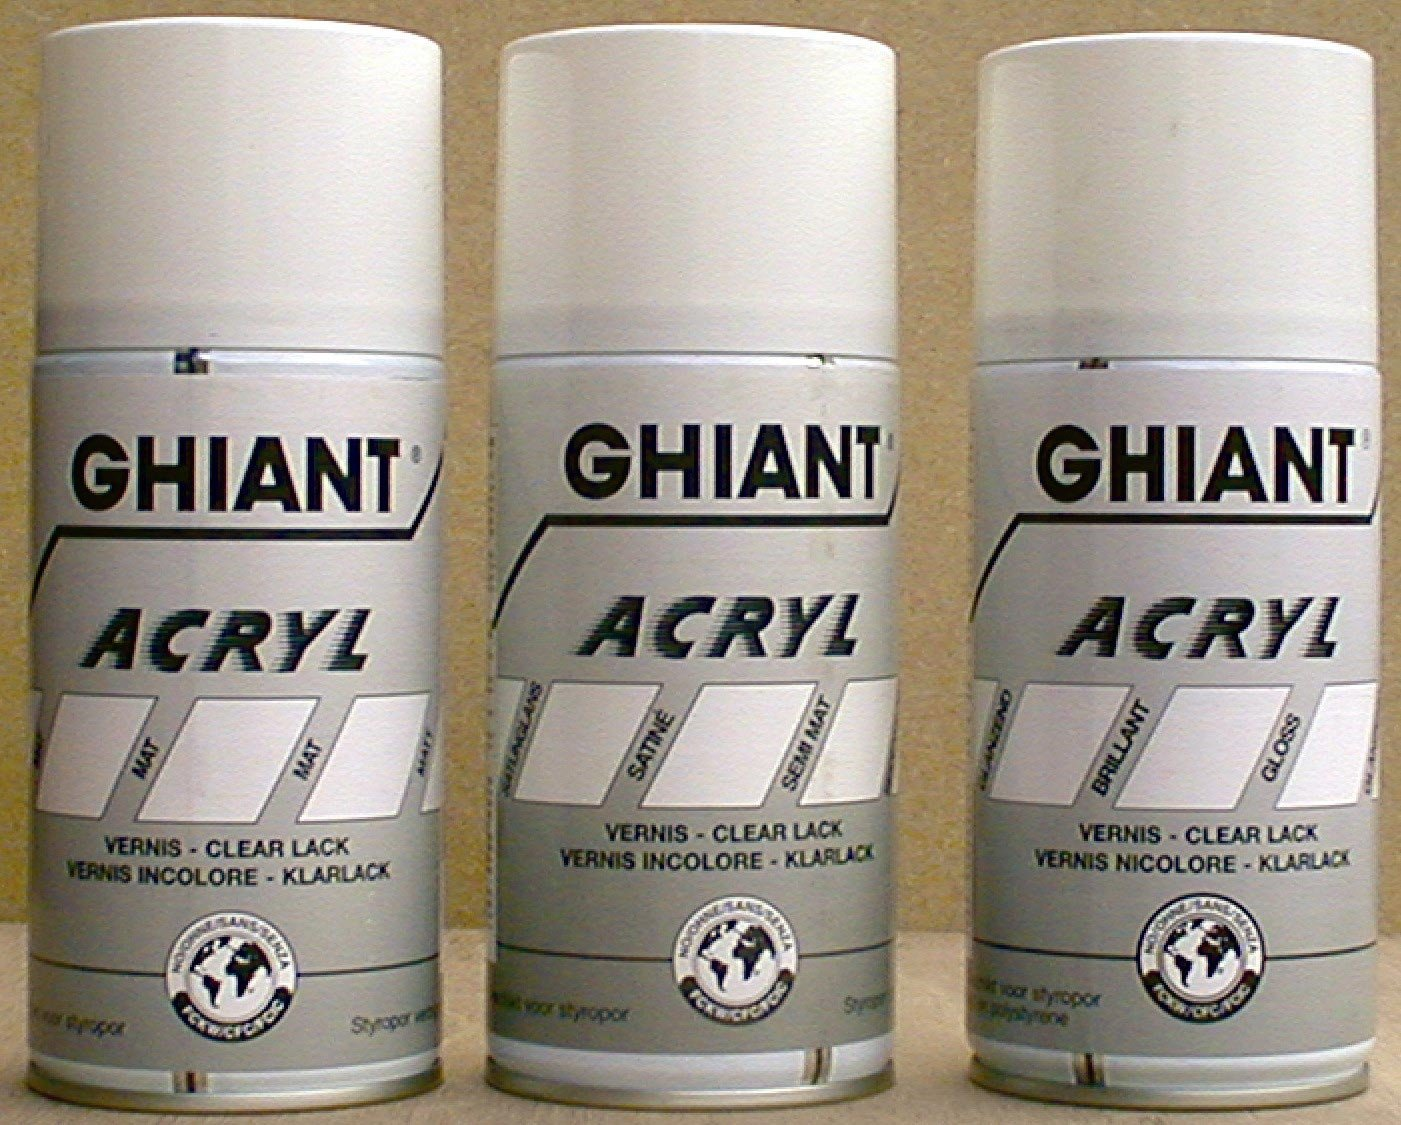 Ghiant 300 ml Acryl Clear Lacquer Gloss Can, Transparent 66030130